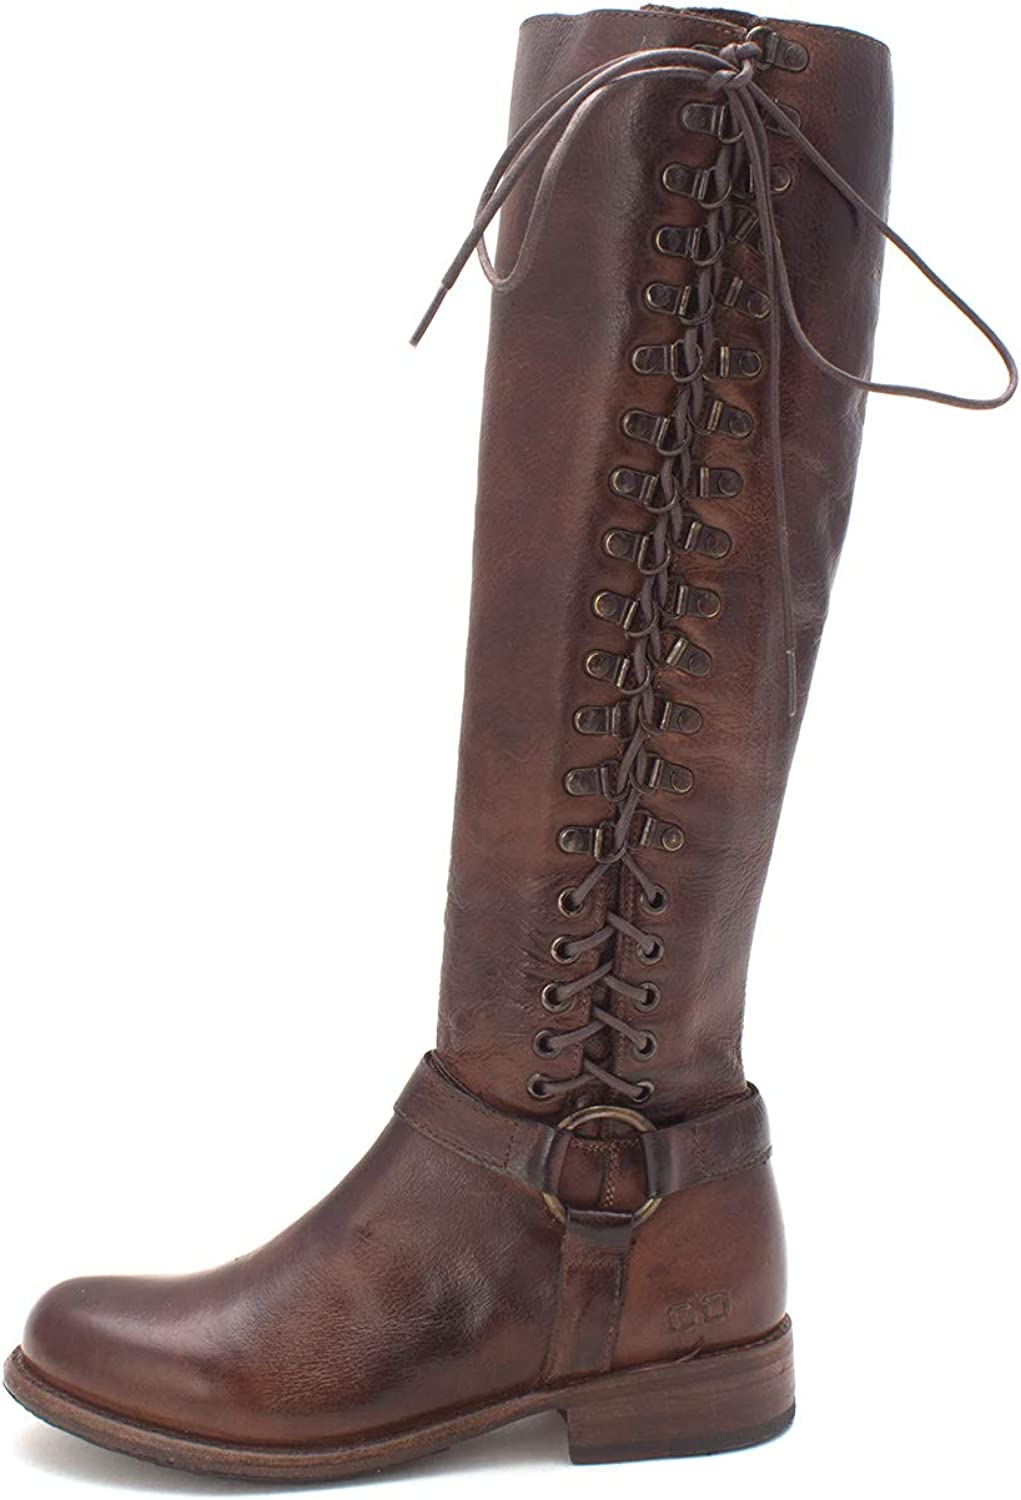 Bed Stu Women's Ringer Boot